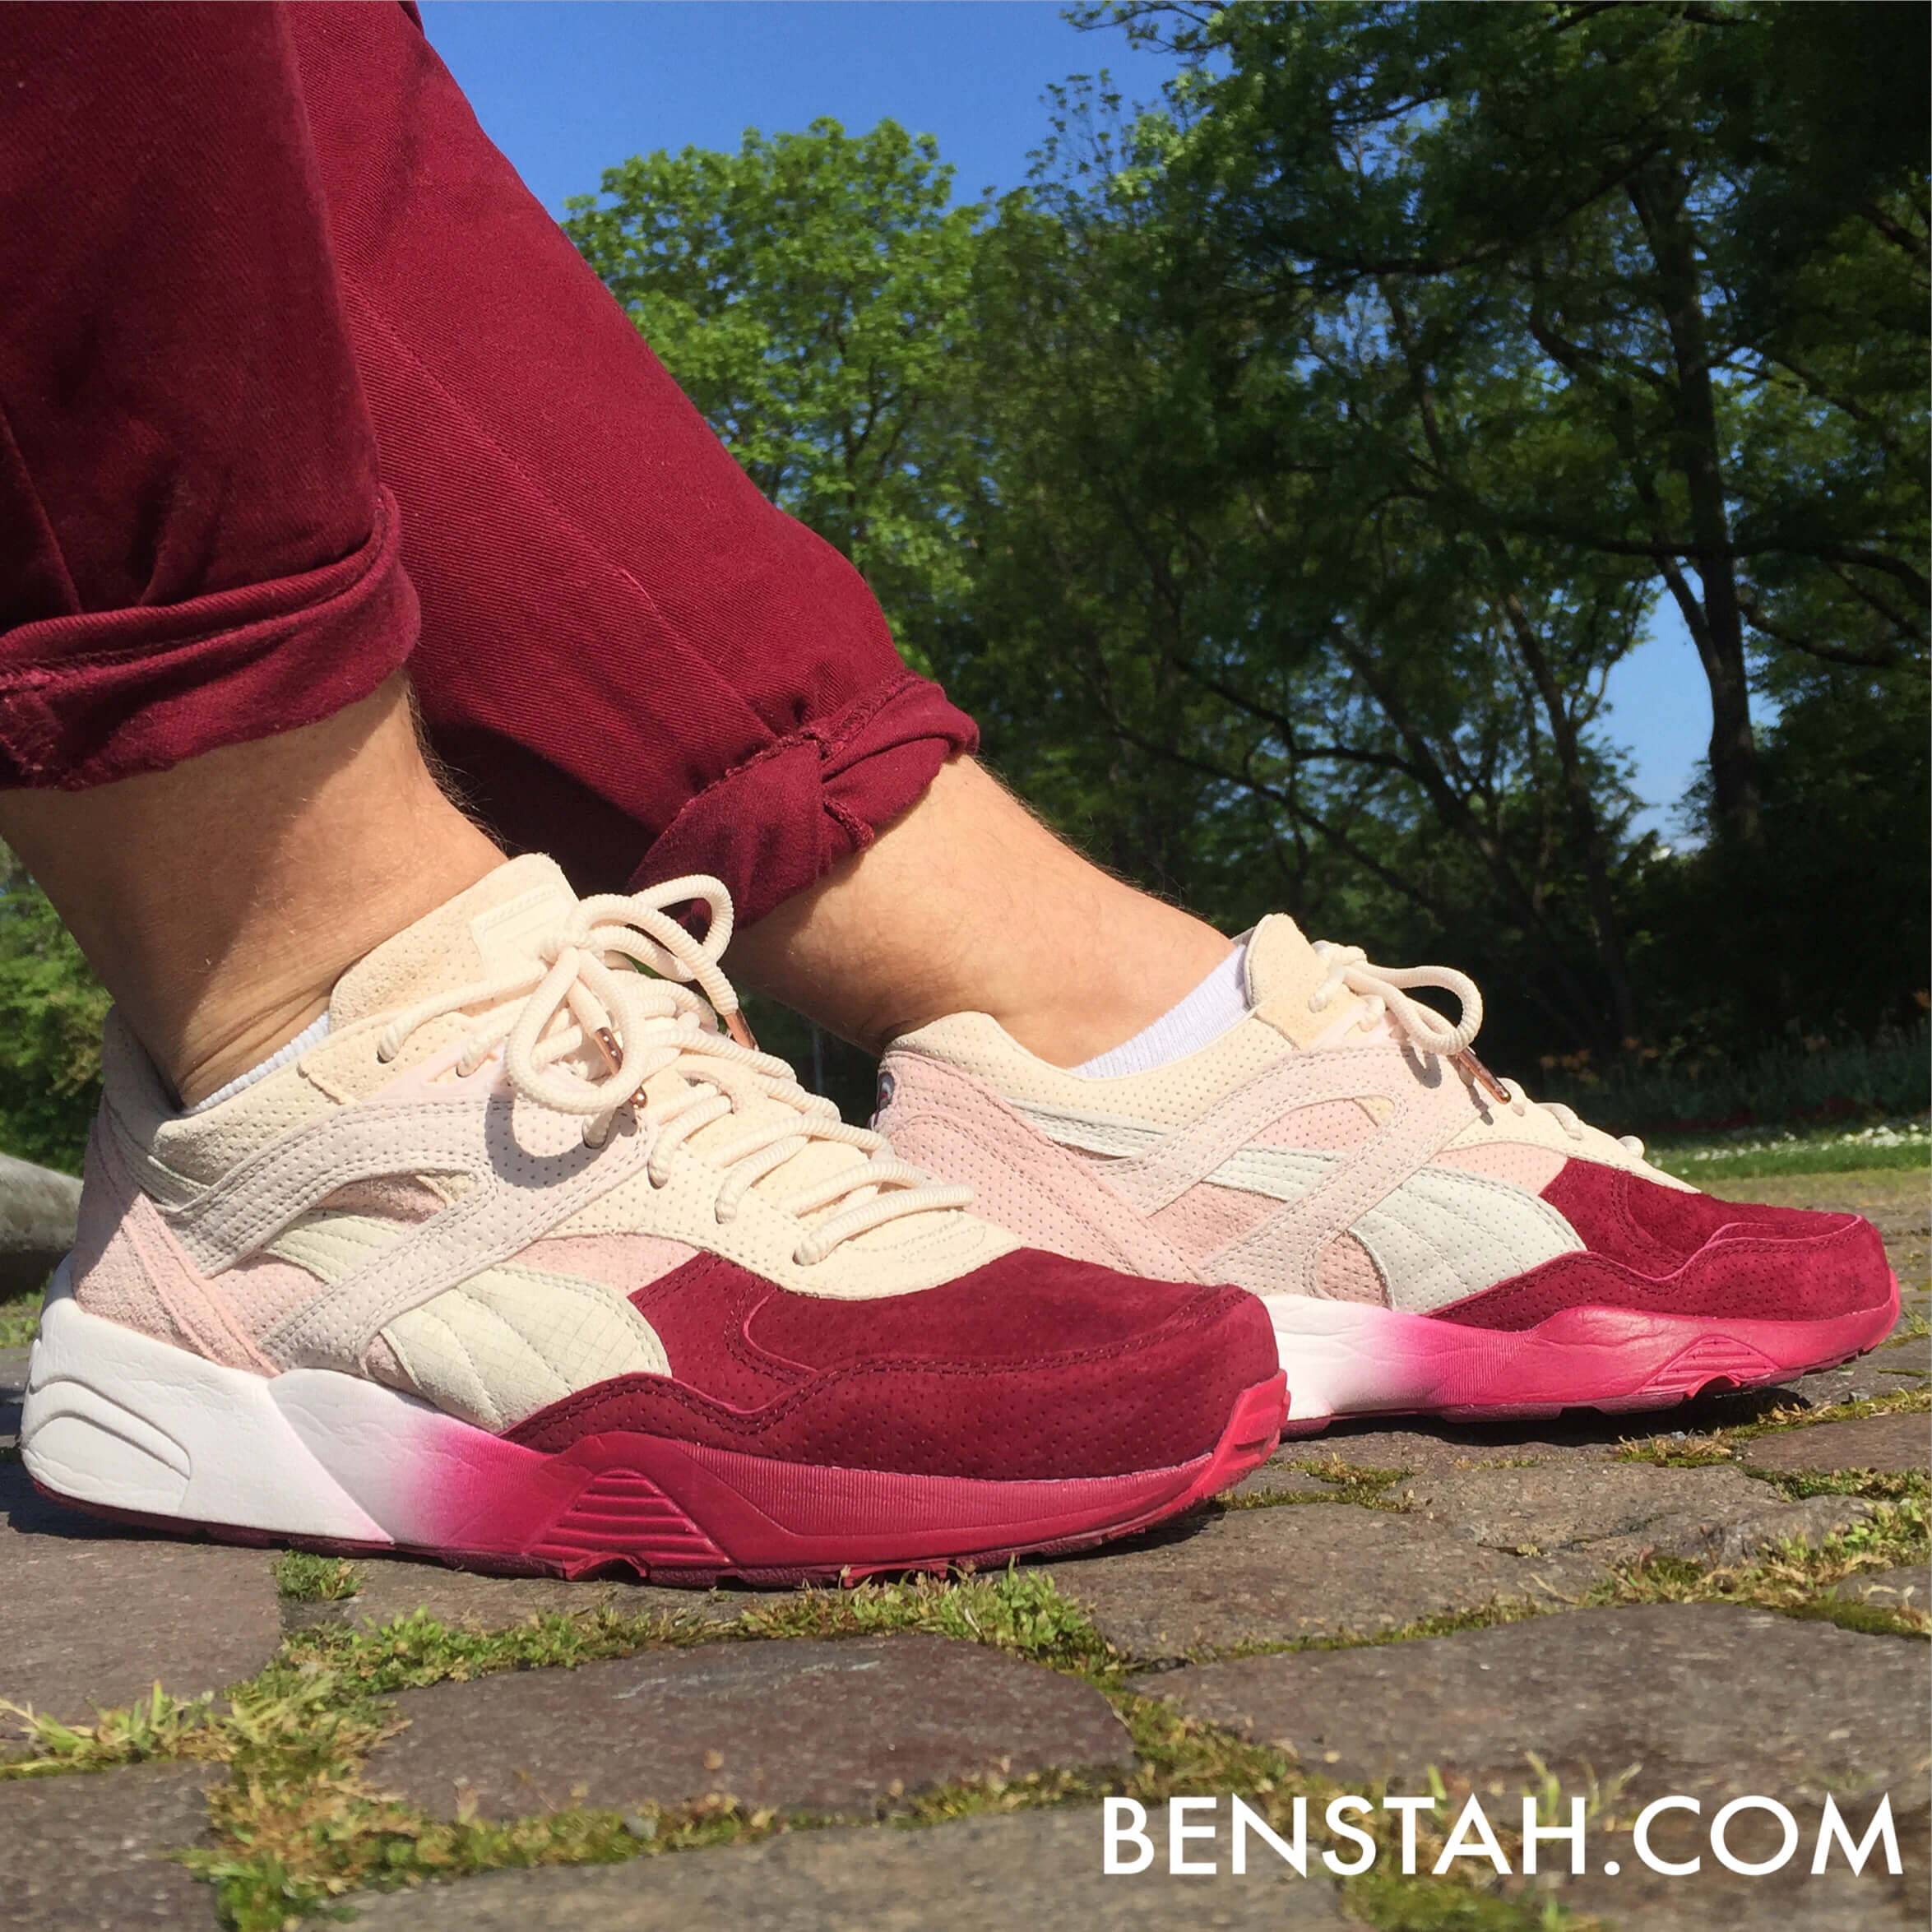 Puma-Ronnie-Fieg-x-R698-Sakura-Project-Side-View-Benstah-Onfeet